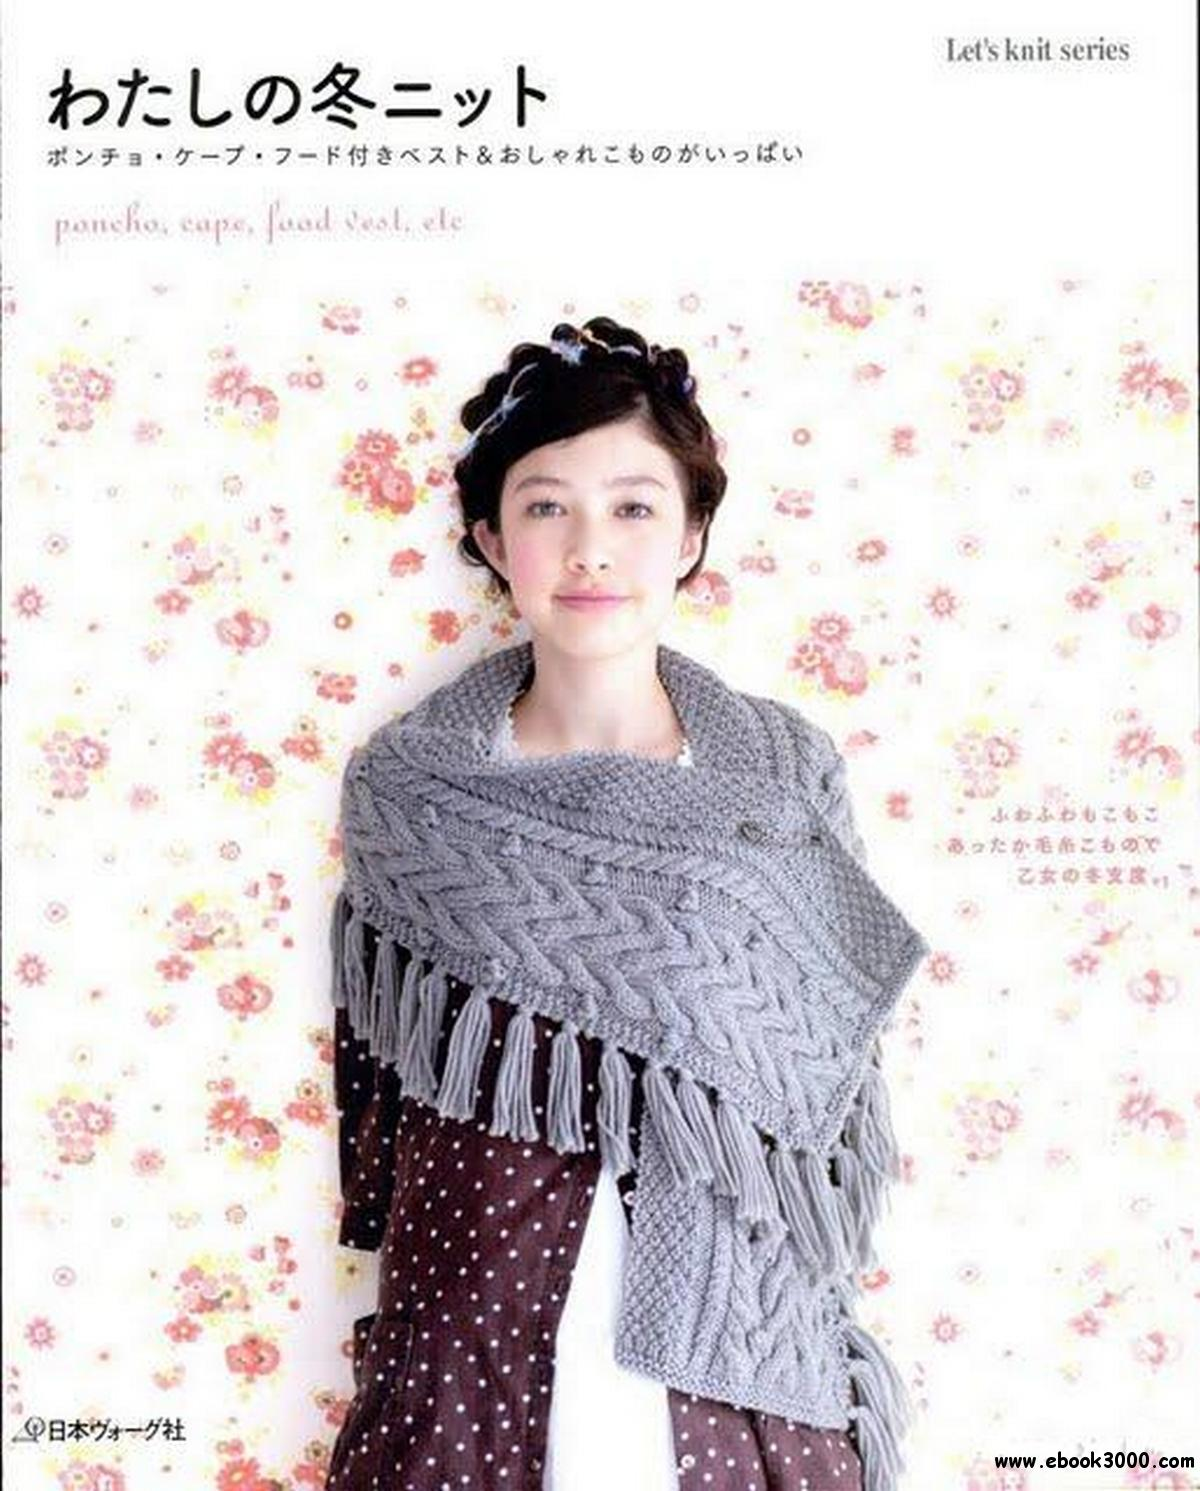 Let's Knit Series NV80162 2011 free download